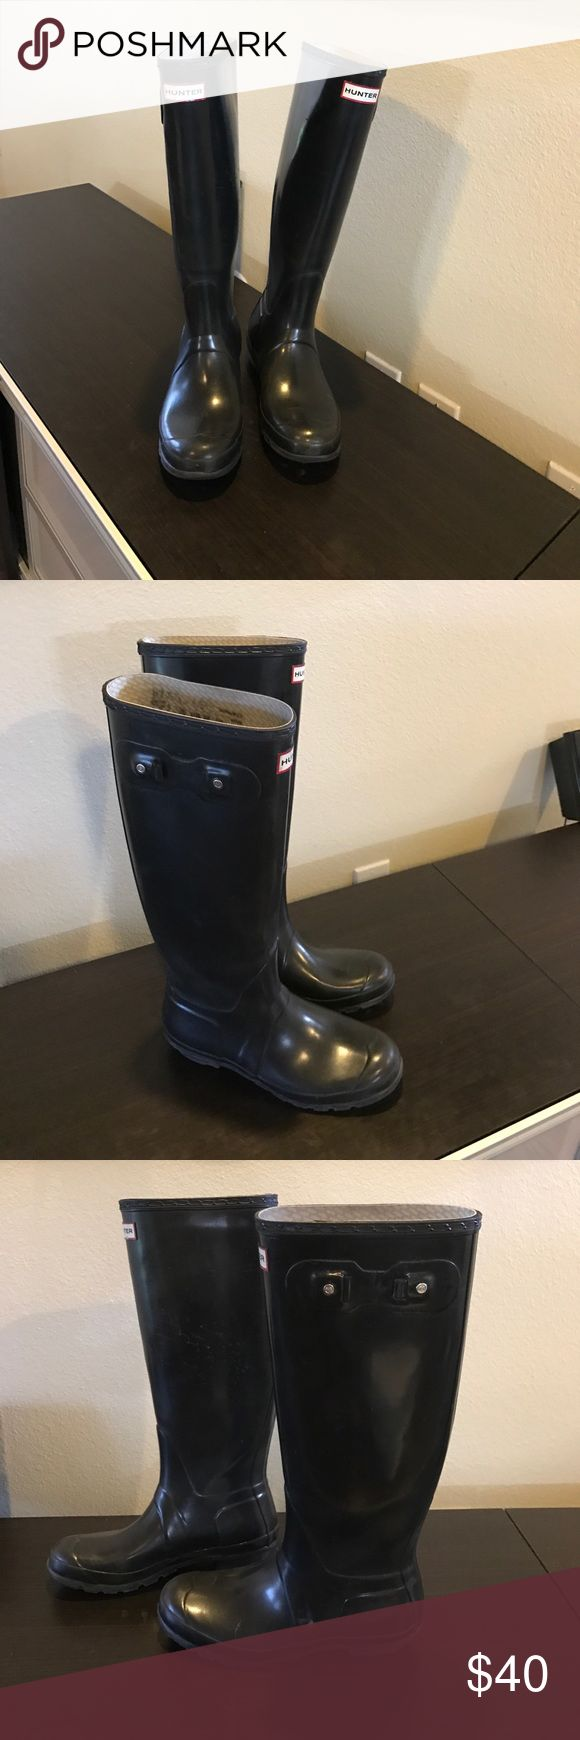 Authentic Hunter Boots black rubber rain boots 8 Authentic Hunter Boots tall black Wellington rubber rain boots 8 Euro 39 light natural blooming & light scuffs missing side straps light wear on insoles & bottom heels. sold as is. Final listed price please no offers Hunter Shoes Winter & Rain Boots